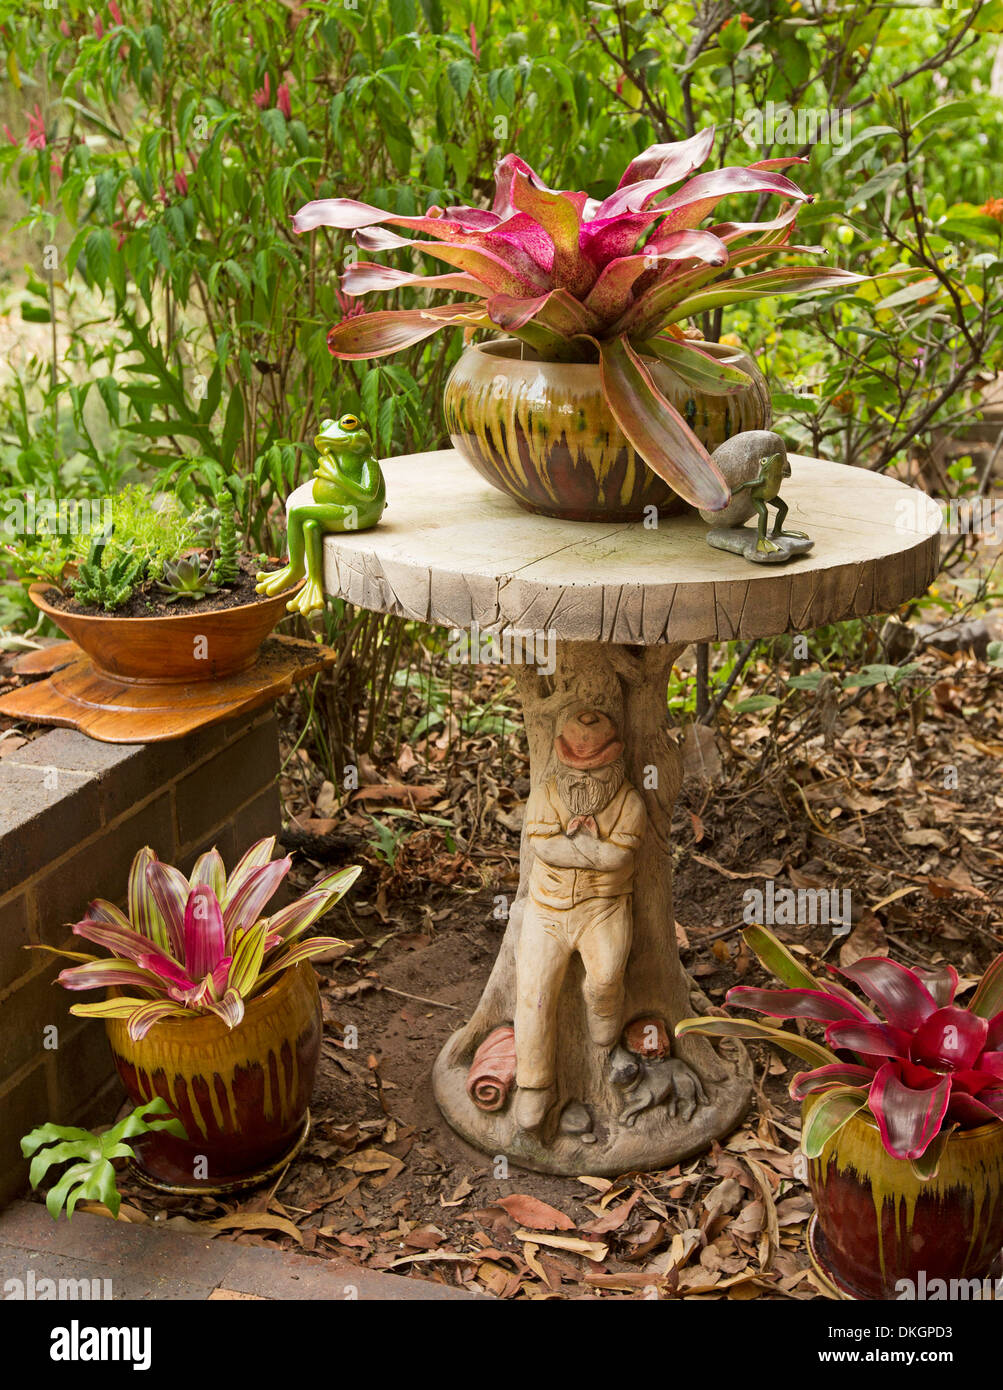 Wonderful Decorative Concrete Garden Table With Red Leafed Bromeliads In Ornate  Containers In Sub Tropical Garden